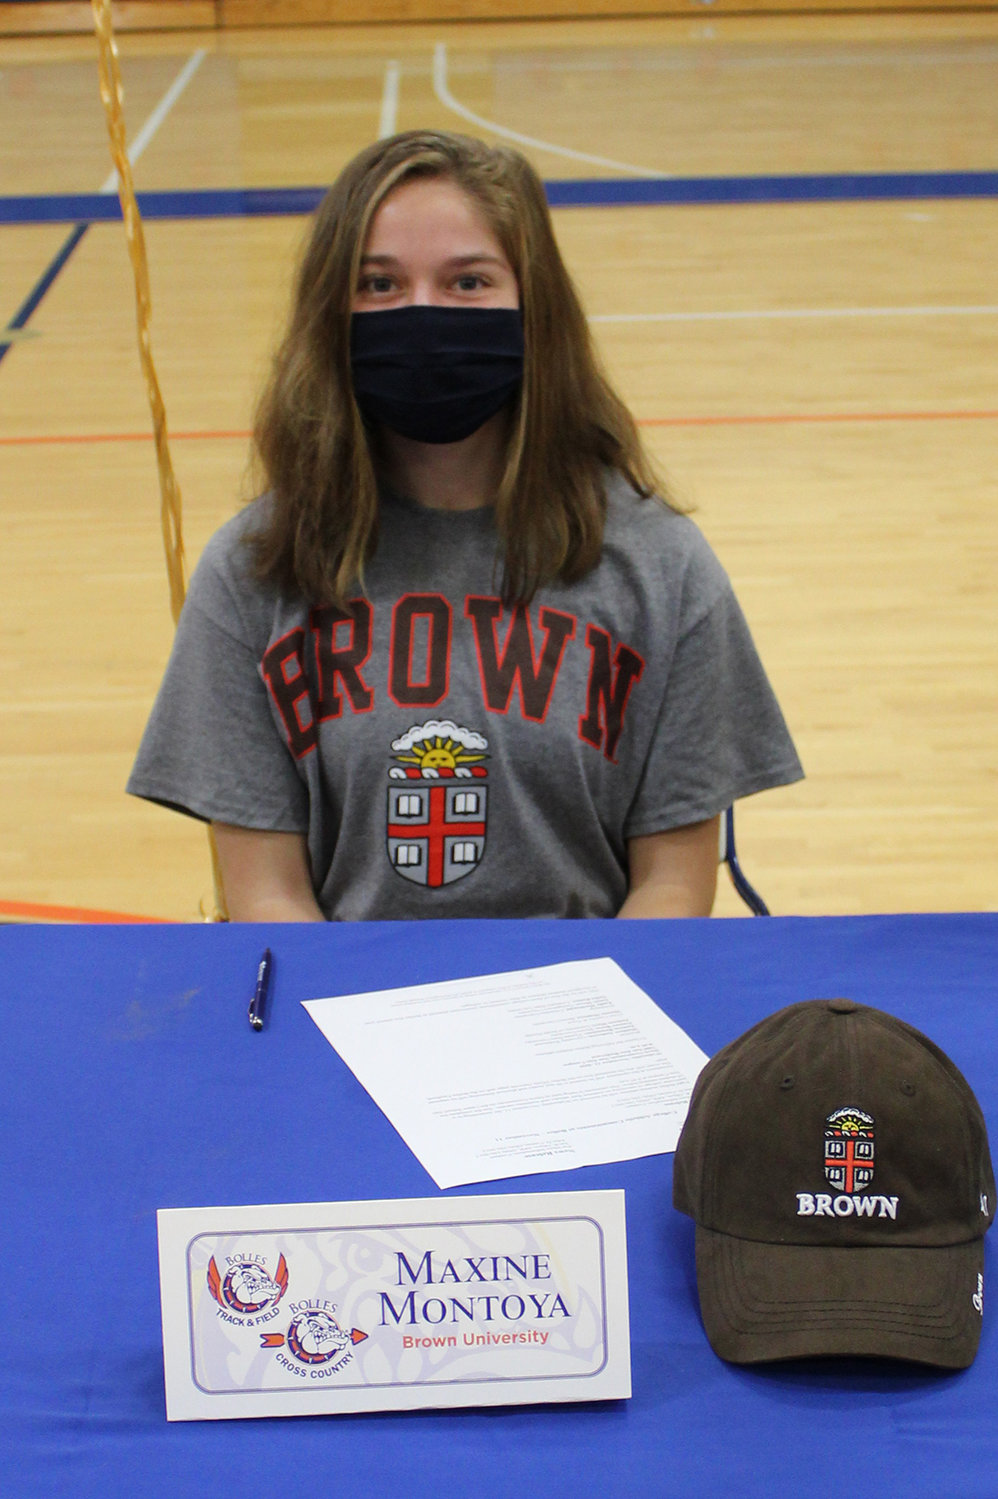 Cross country and track athlete Maxine Montoya has committed to Brown University.